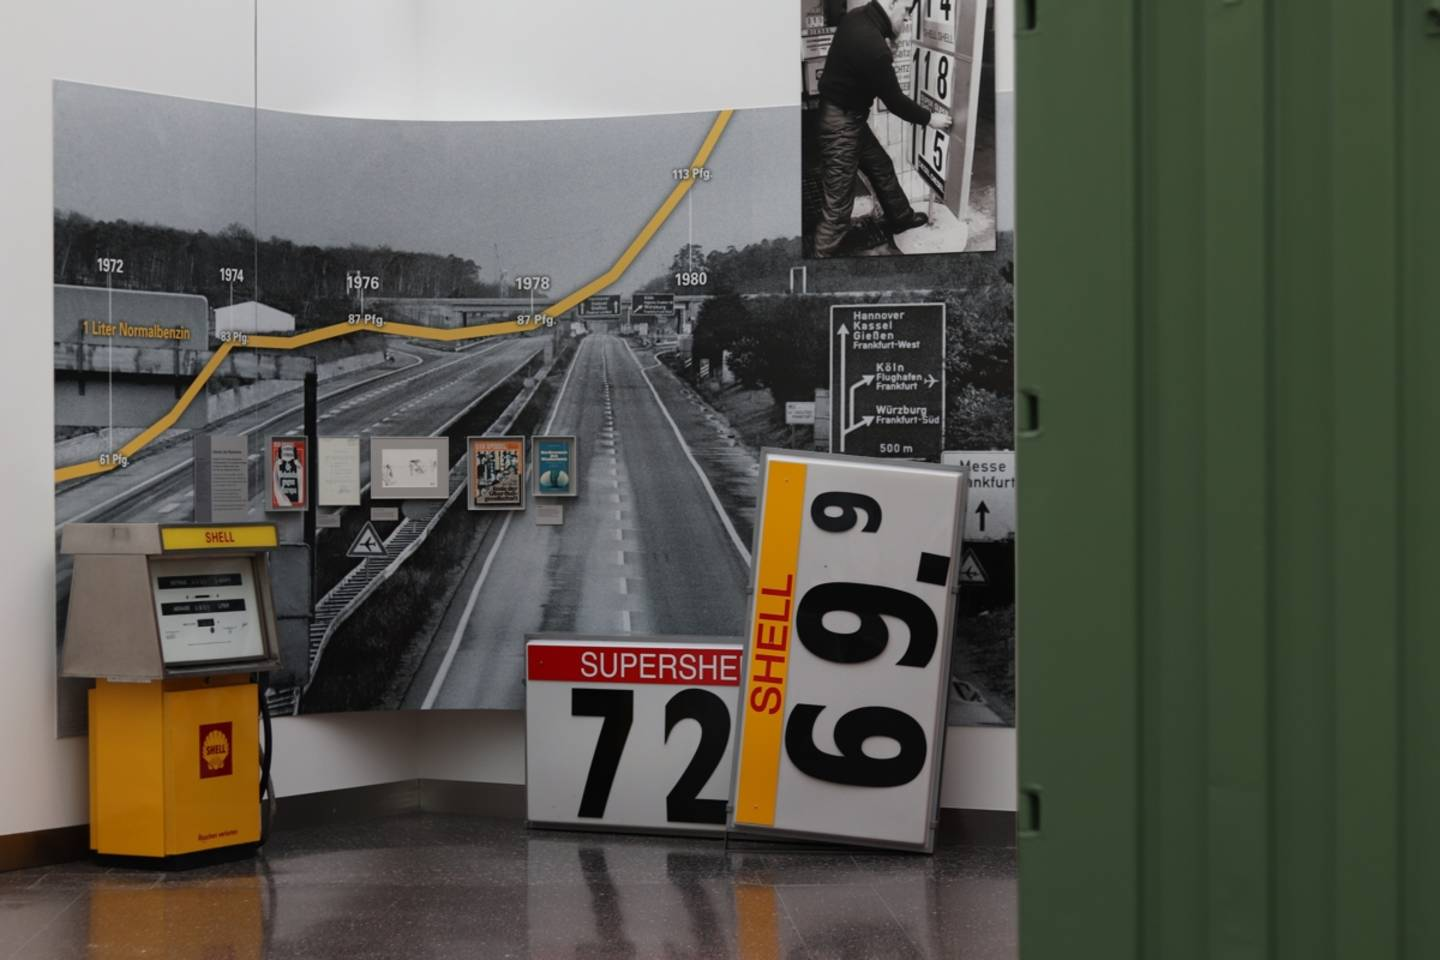 Part of the exhibition of the Haus der Geschichte about gas stations